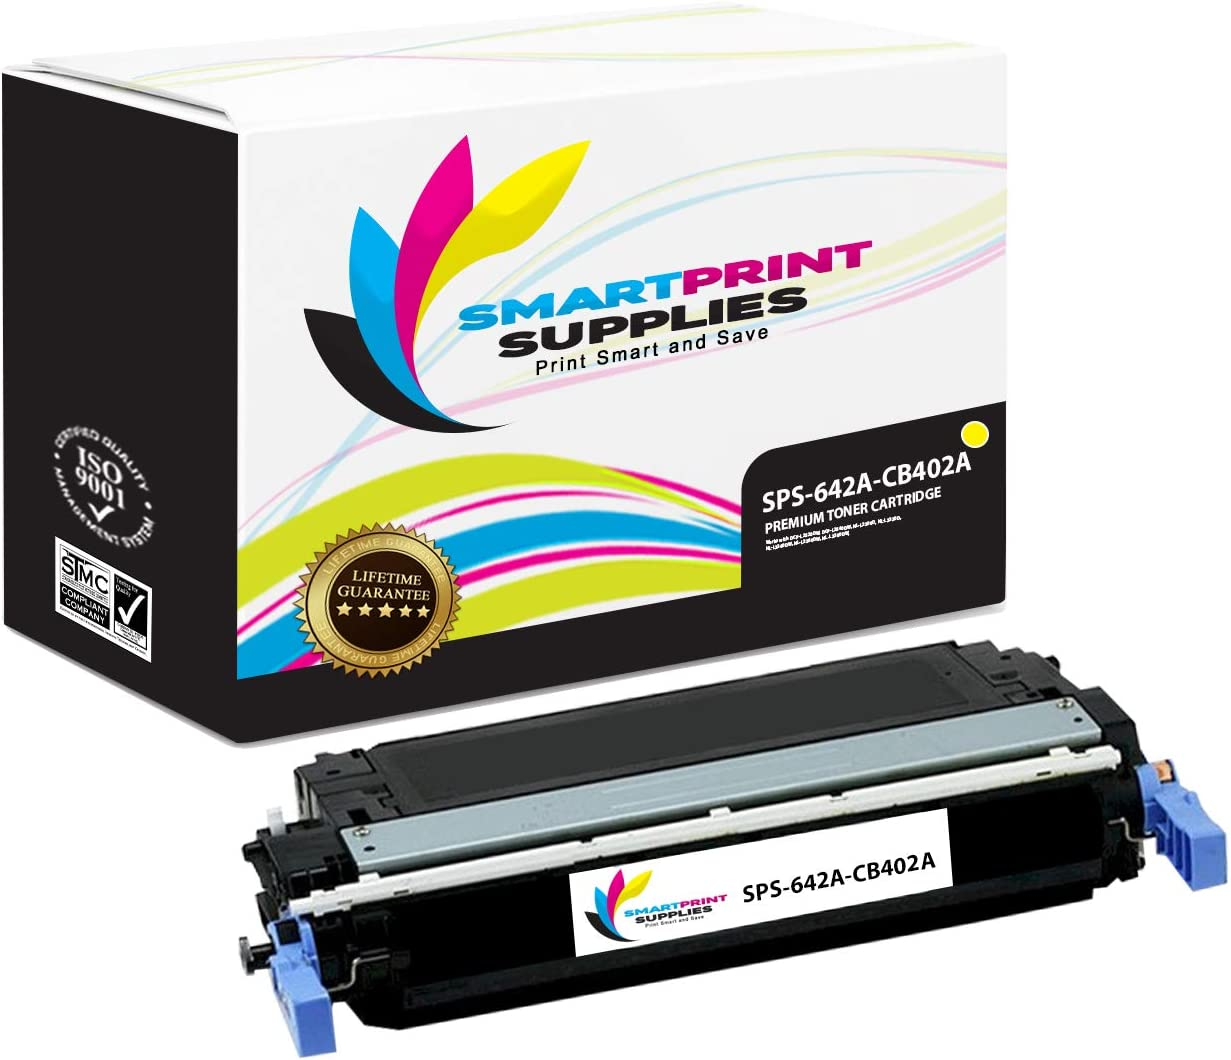 Smart Print Supplies Compatible 642A Toner Cartridge Replacement for HP Color Laserjet CP4005 Printers CB401A Cyan, CB403A Magenta, CB402A Yellow 3 Pack